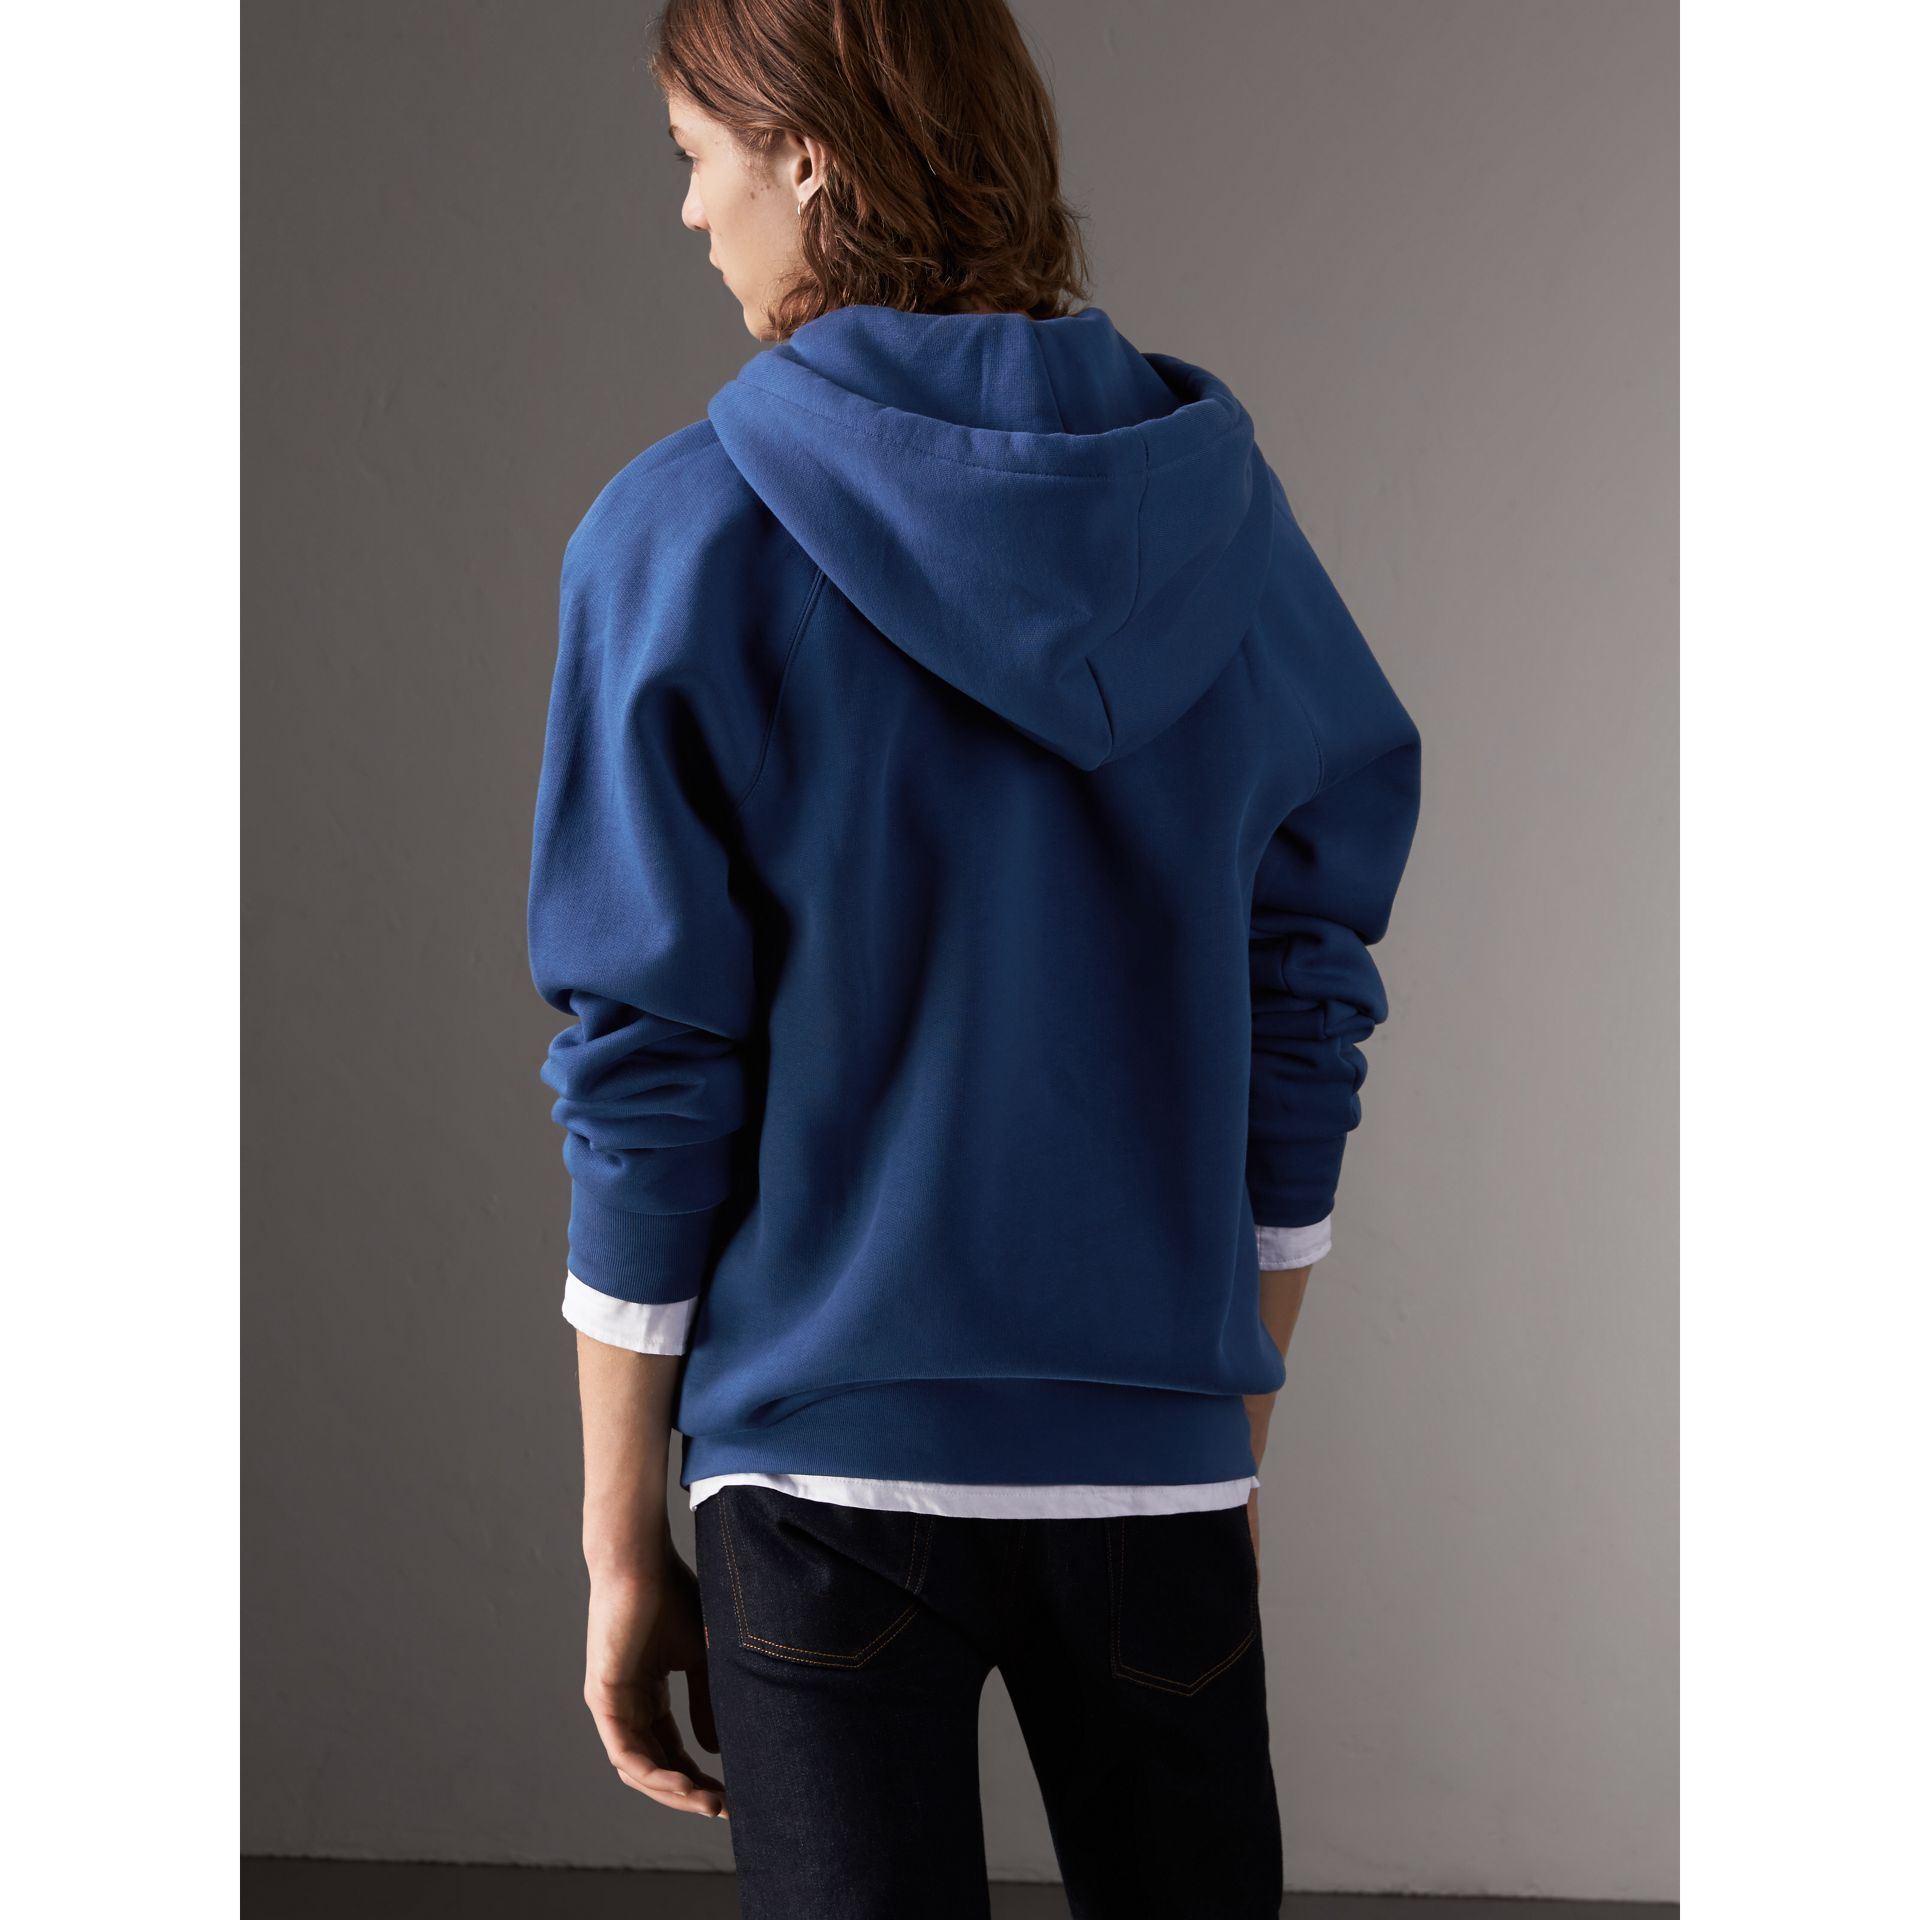 Embroidered Hooded Sweatshirt in Bright Blue - Men | Burberry - gallery image 2